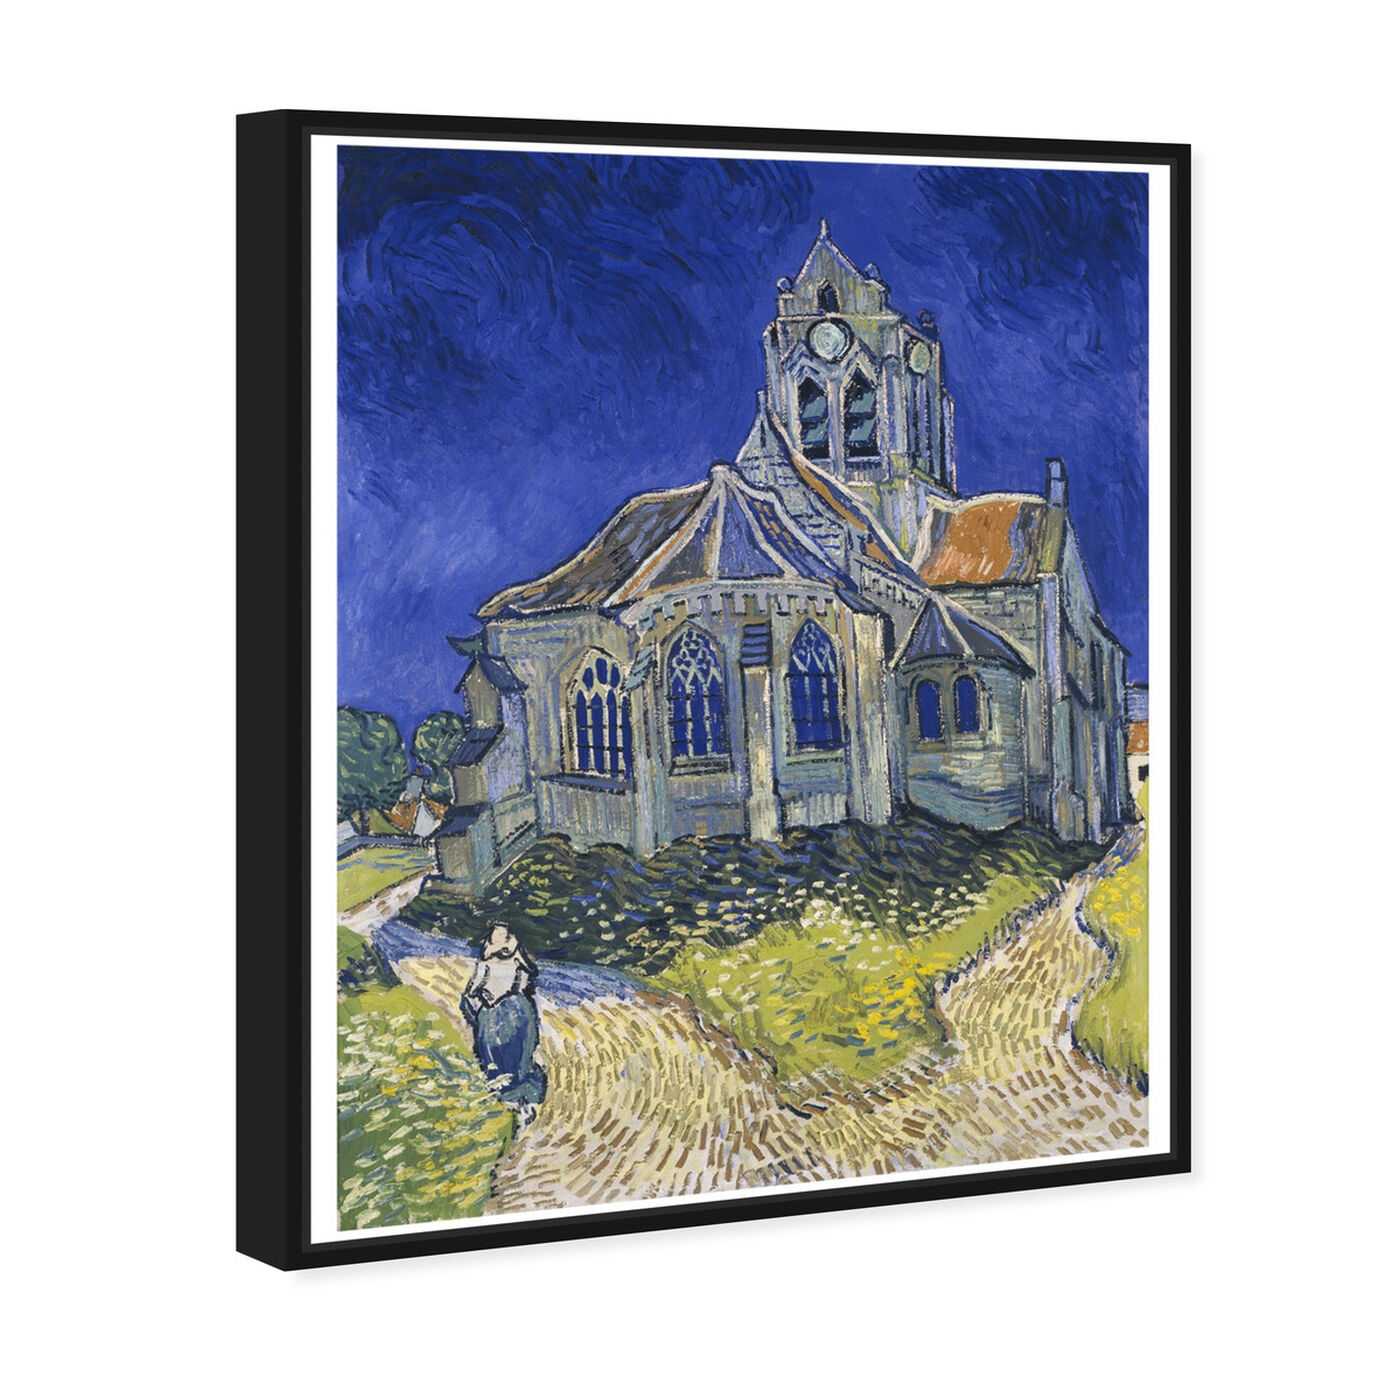 Angled view of Van Gogh - The Church in Auvers Sur Oise featuring classic and figurative and impressionism art.